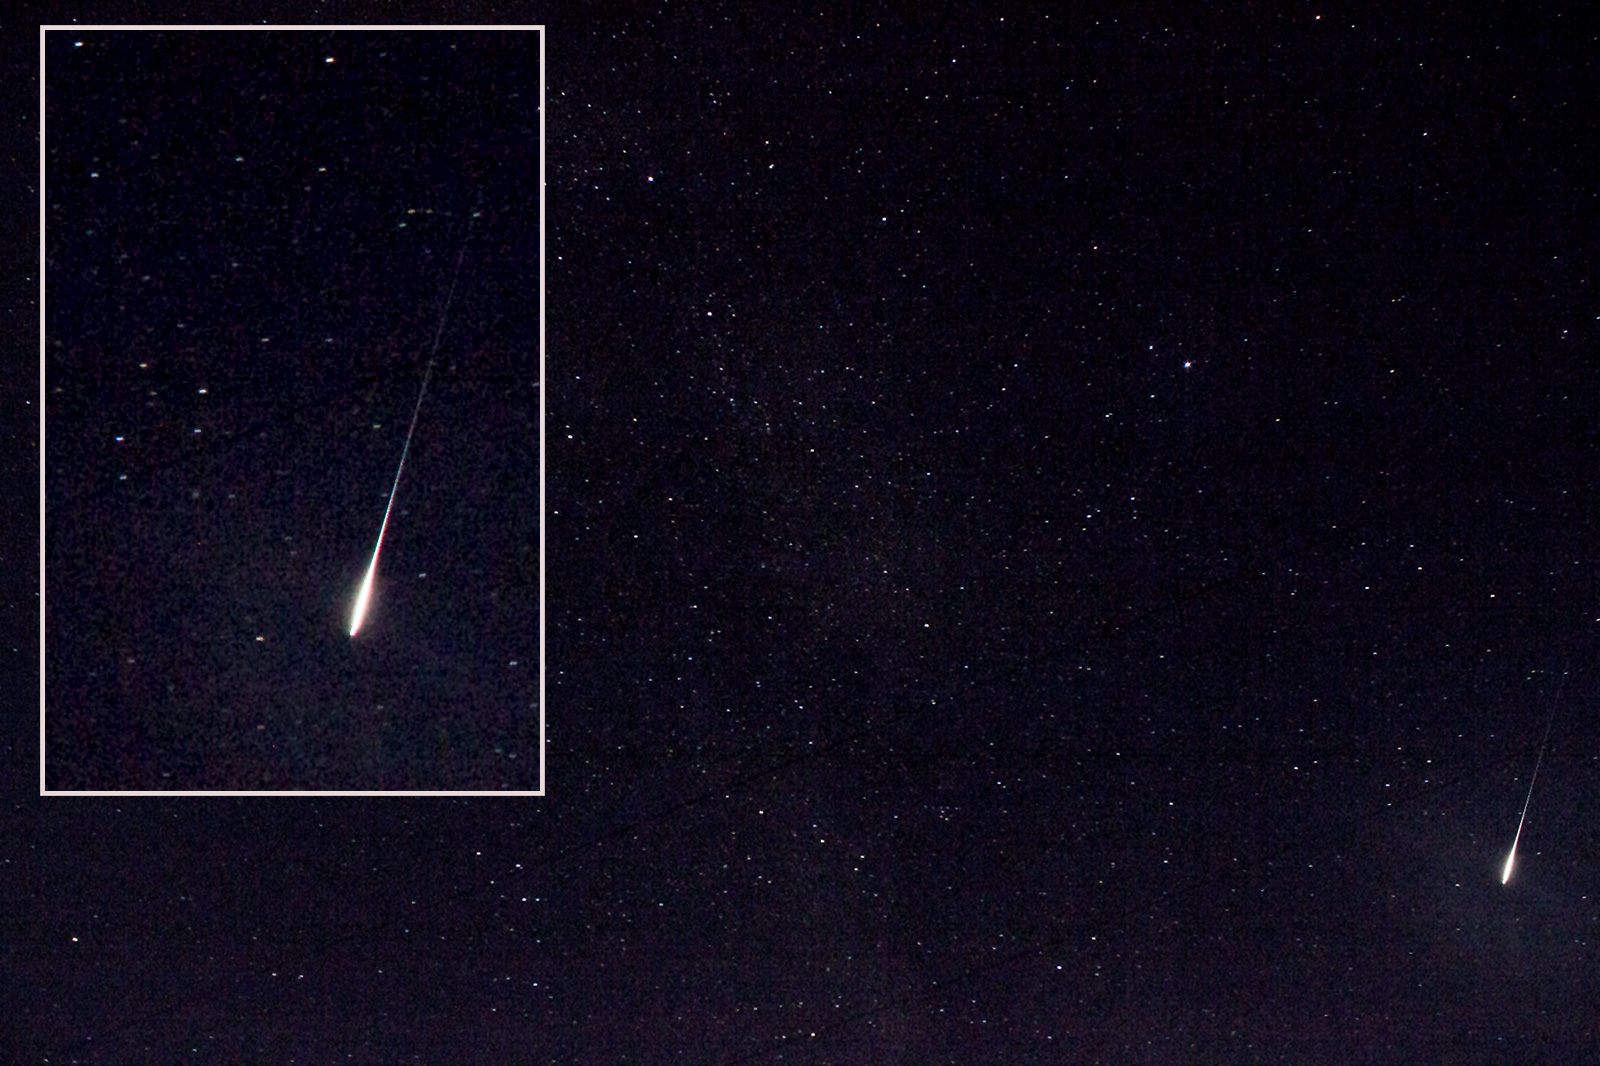 Perseid near Cygnus and Lyra